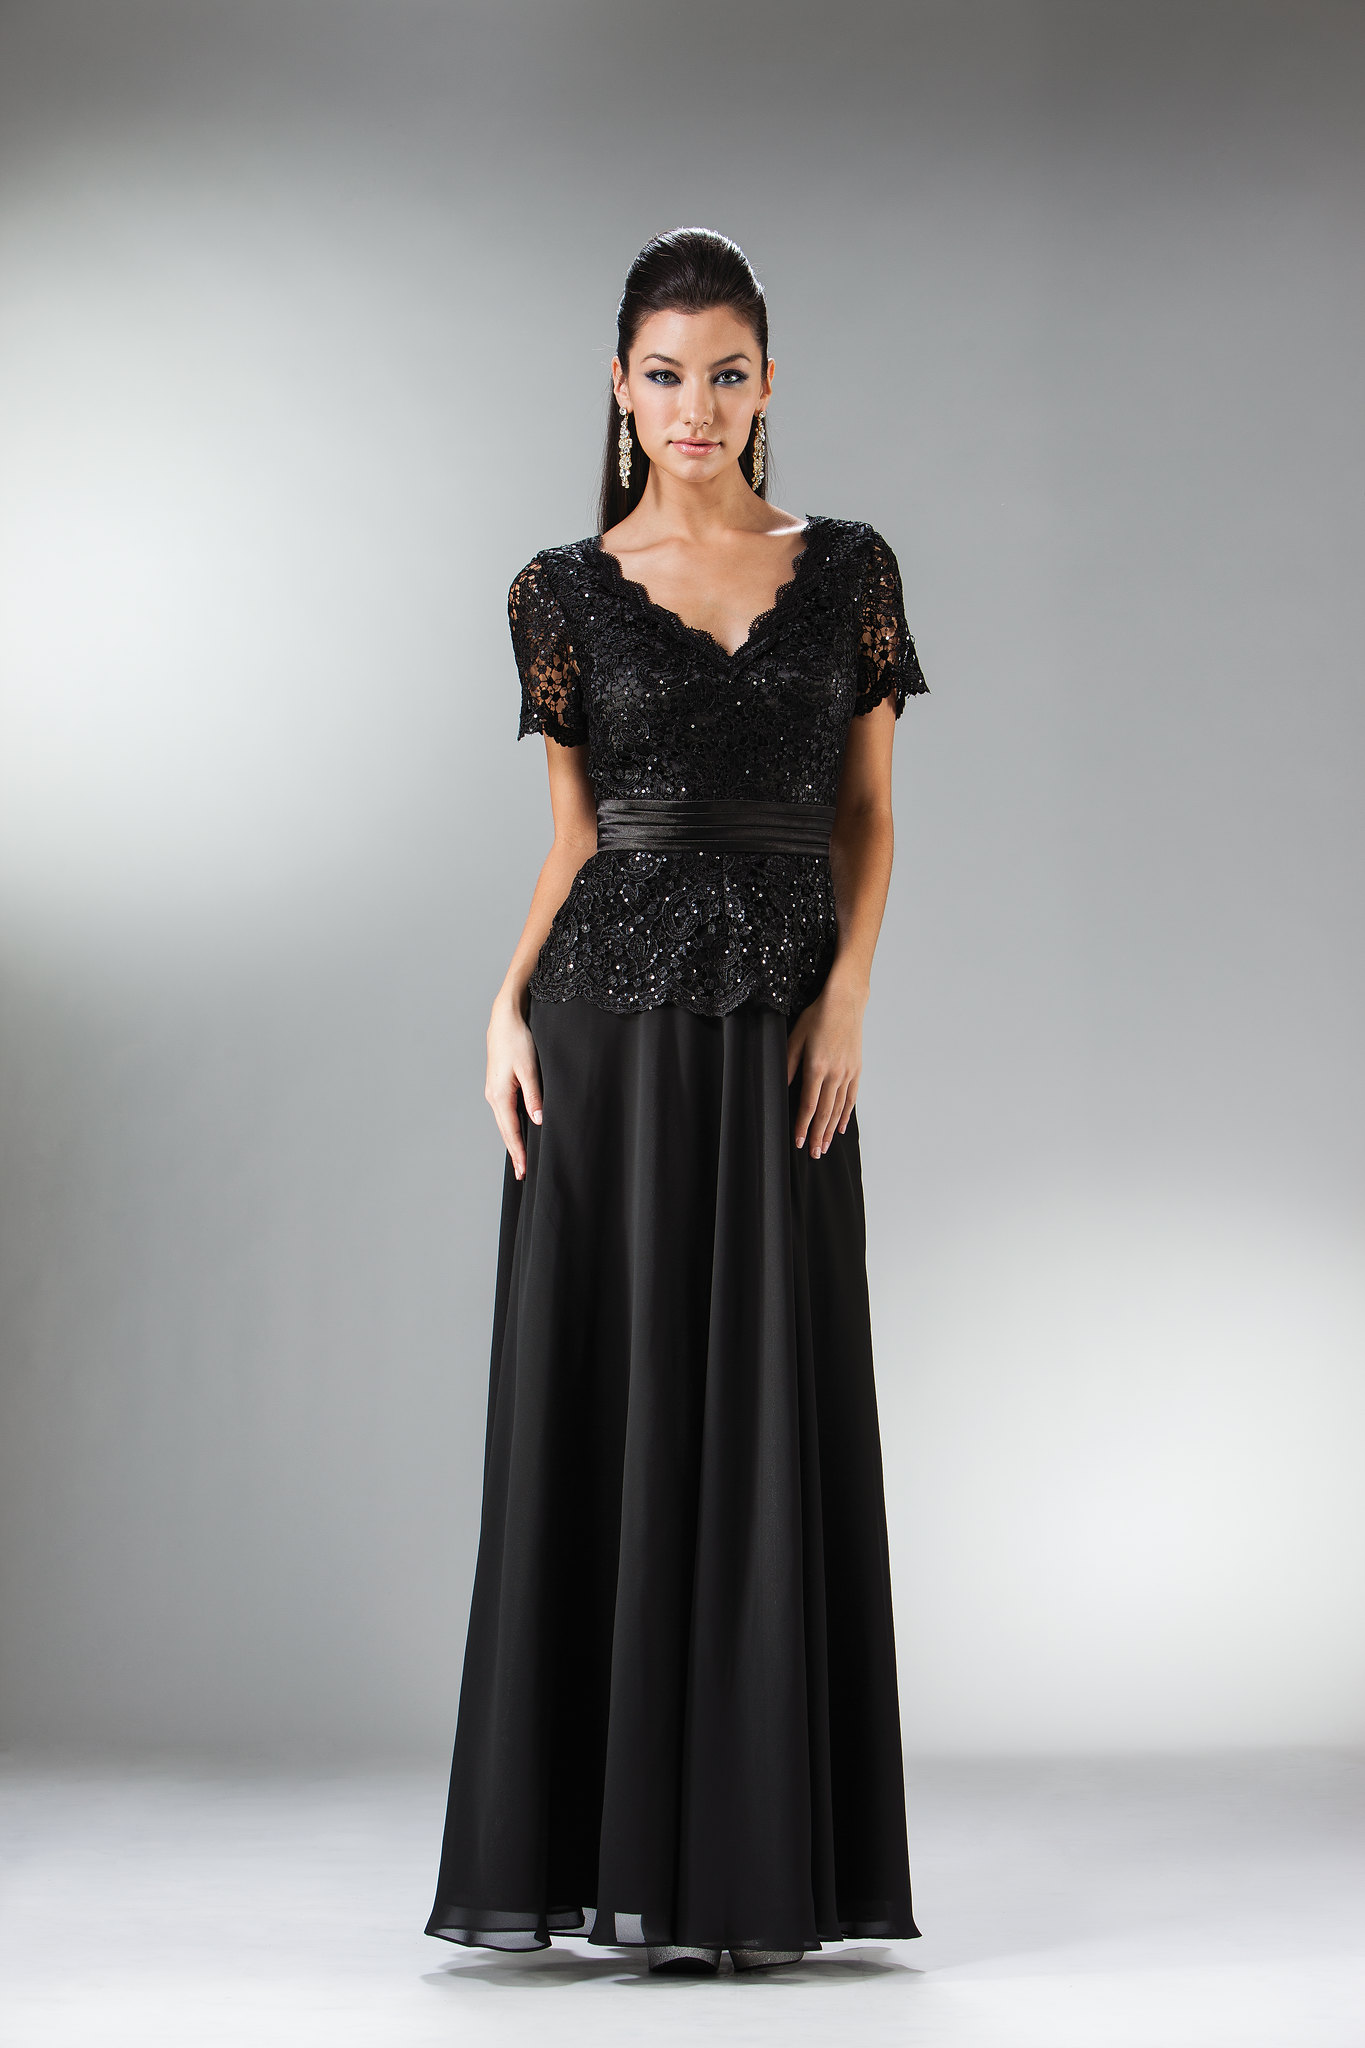 Simply Elegant Lace Bodiced Chiffon Skirt Mother Of The